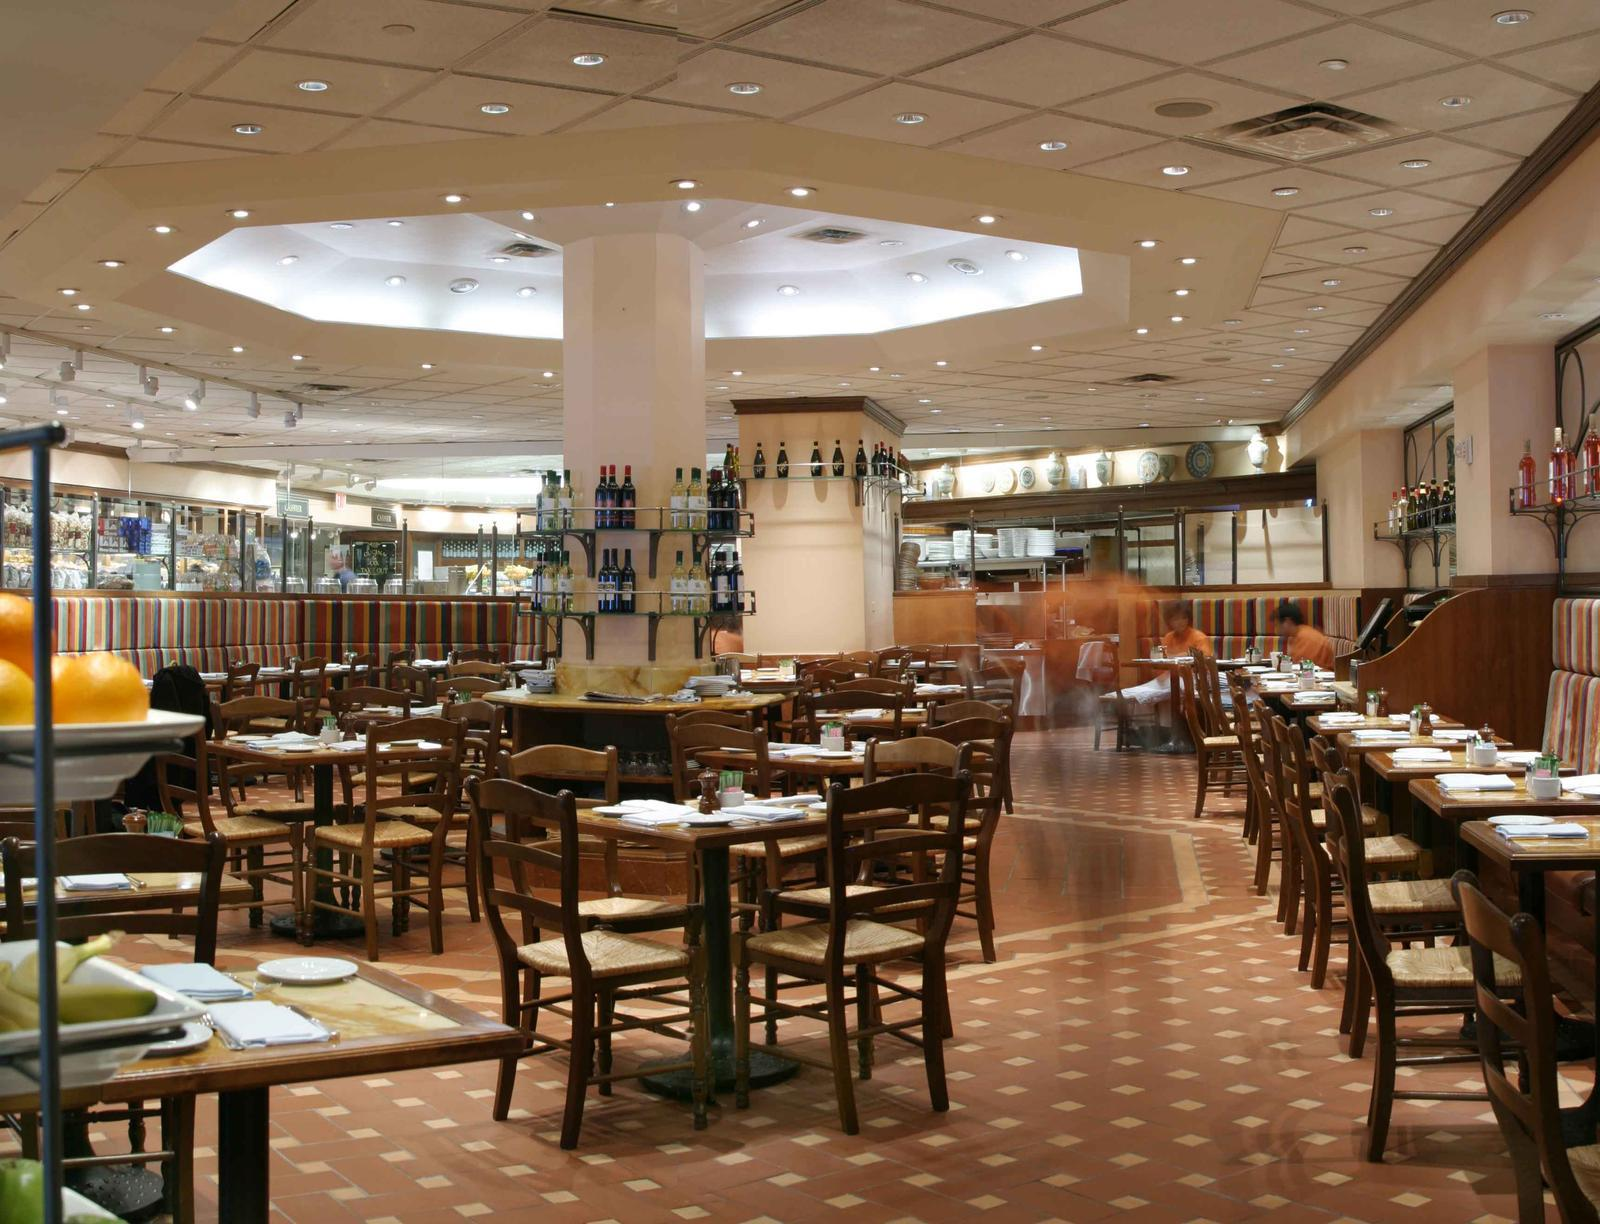 Cucina  Co at Rockefeller Center  Mediterranean Cuisine in NYC  Citiview Travel Guide